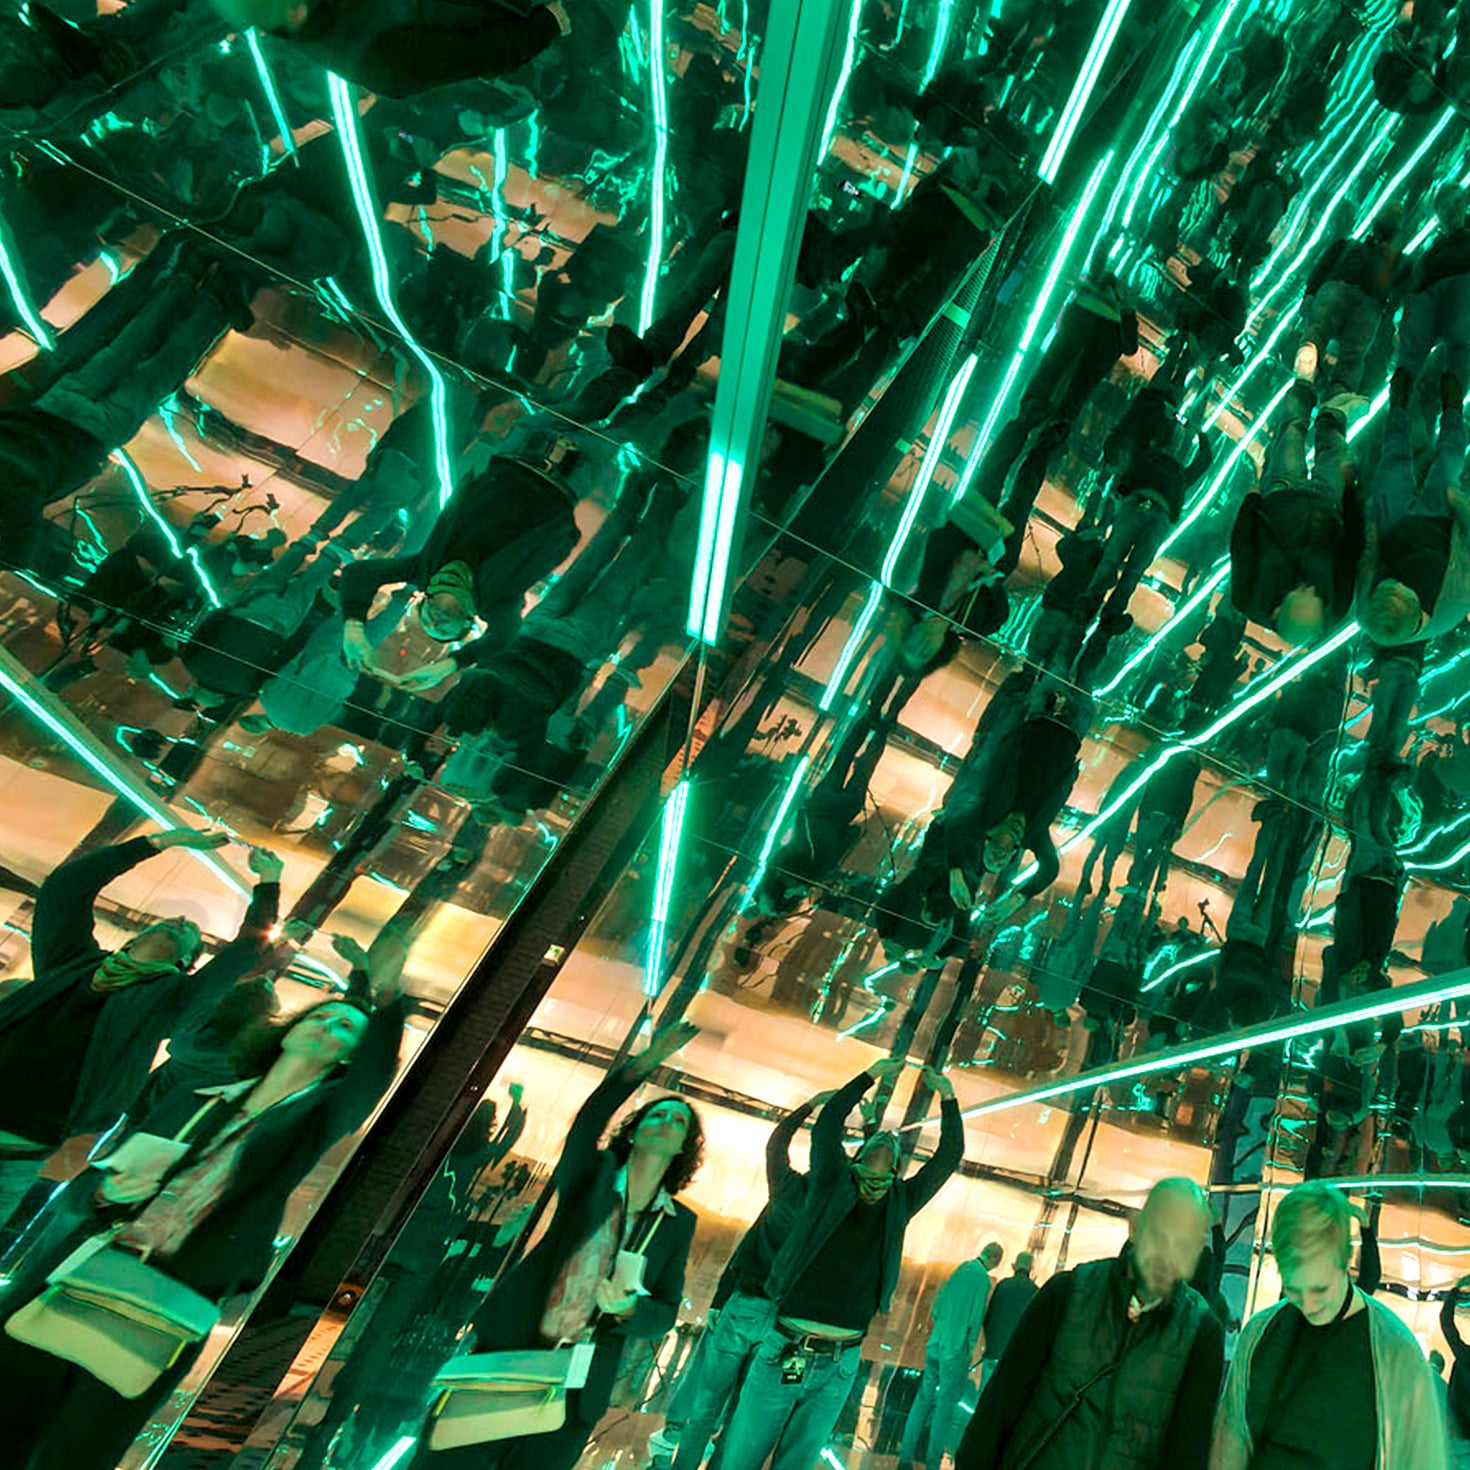 Kenza creation launch of Hewlett-Packard Enterprise EMEA immersive brand and customer experience in space infinity room 2